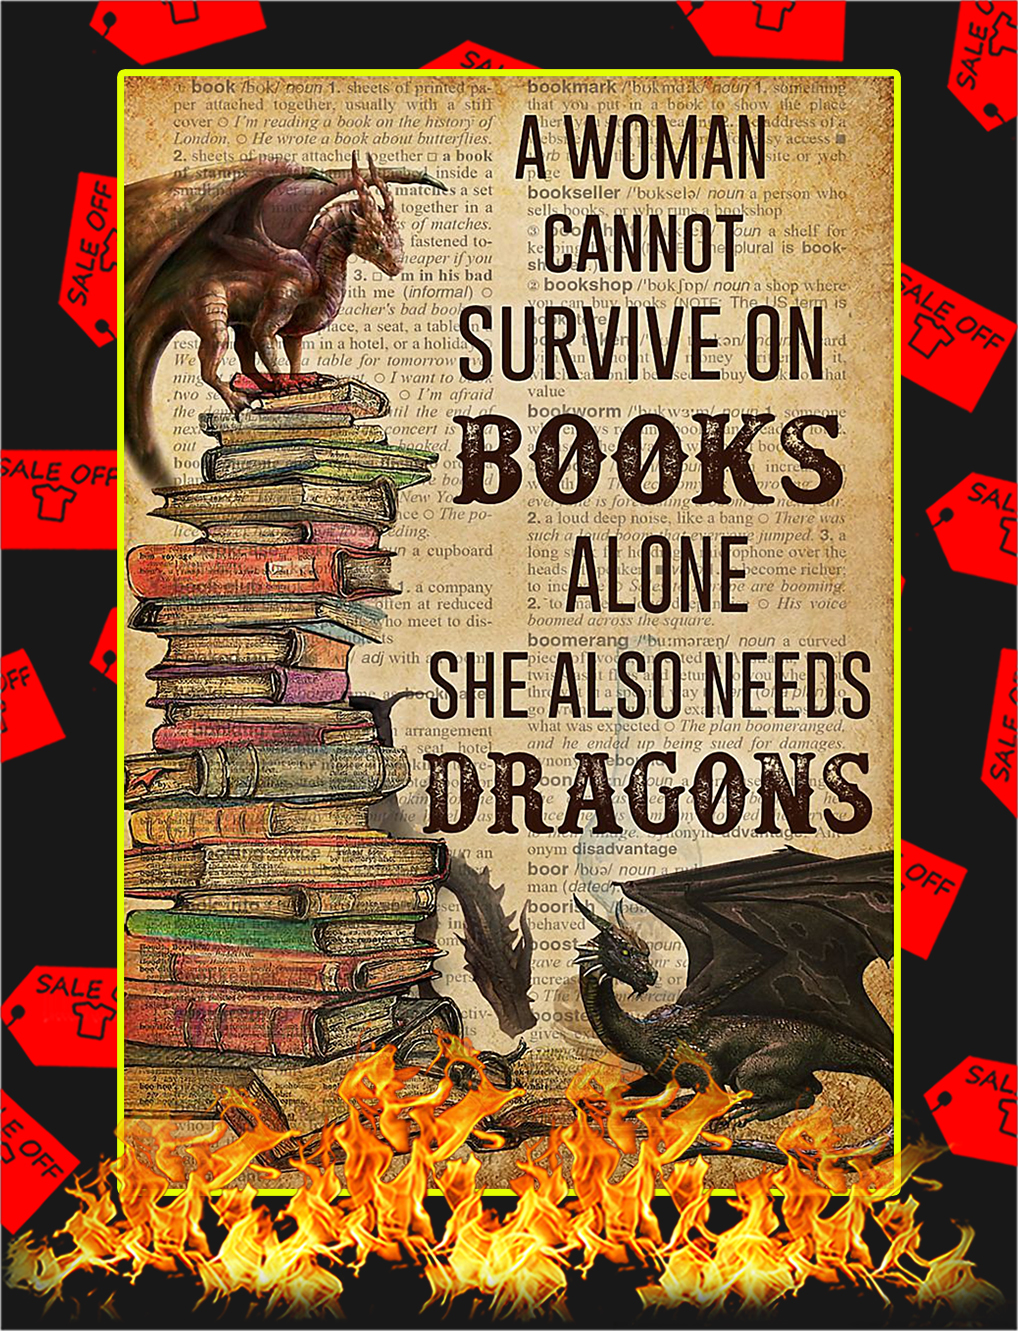 A woman cannot survive on books alone needs dragons poster - A4